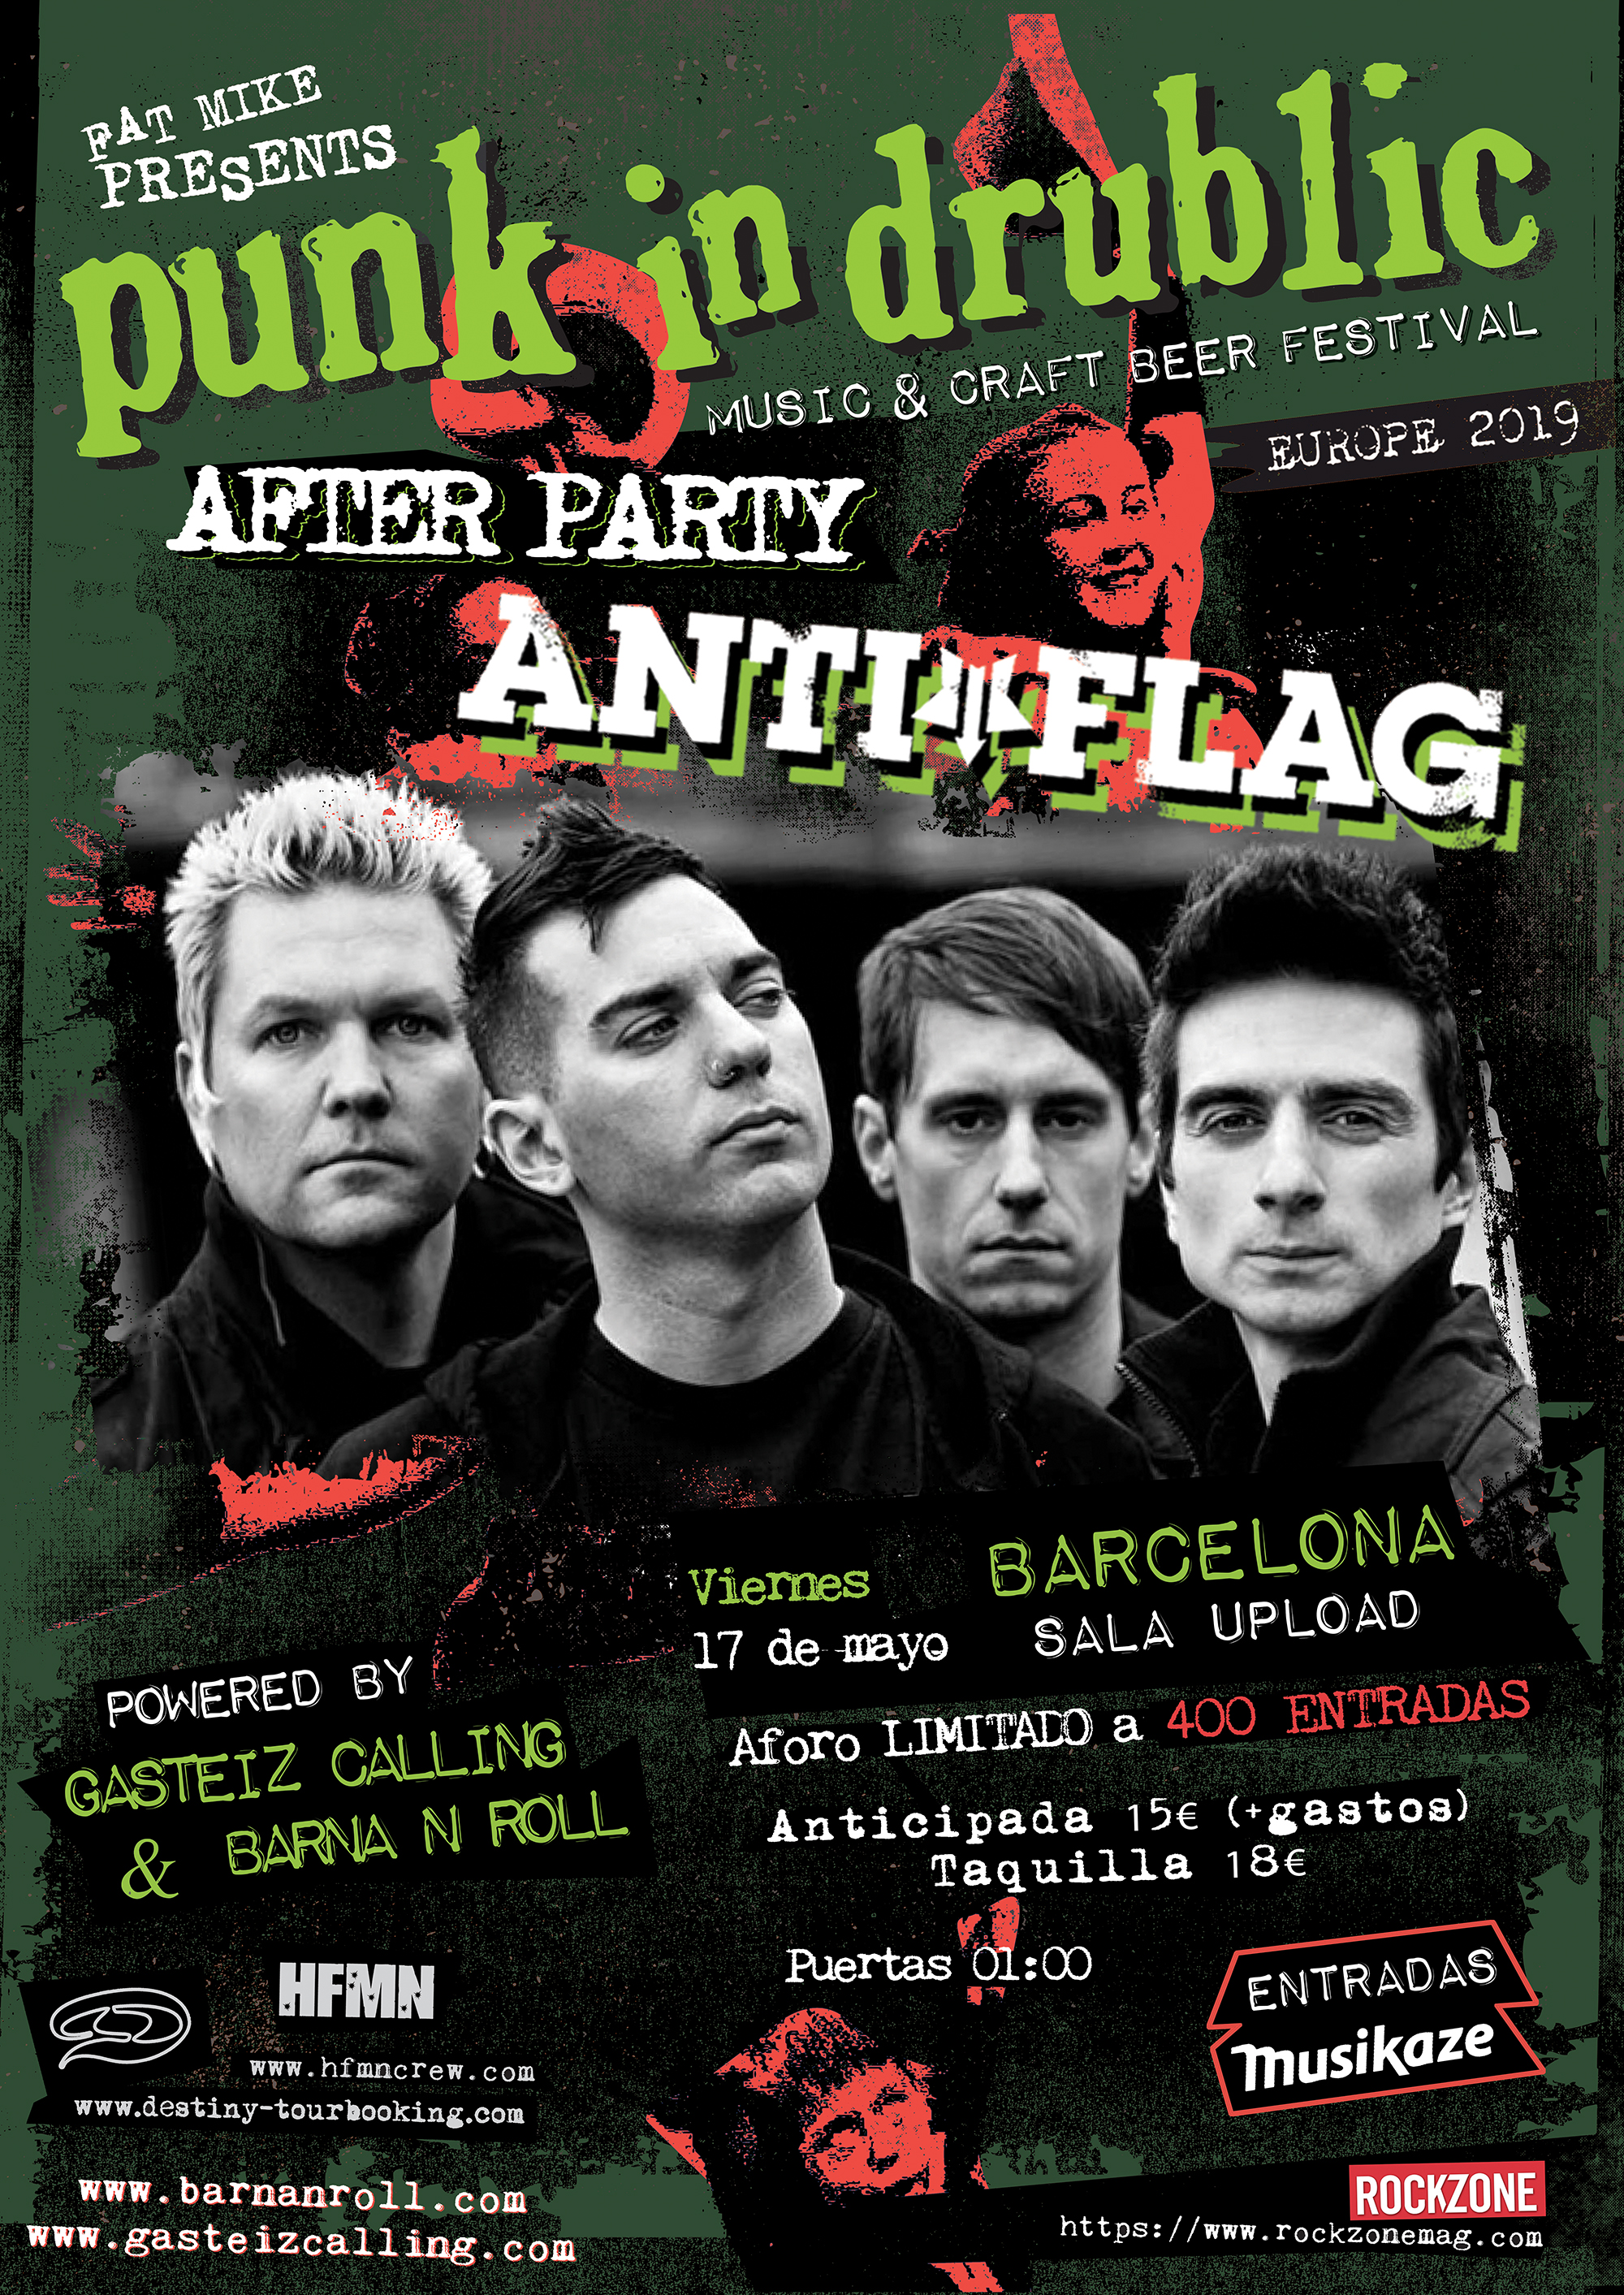 PUNK IN DRUBLIC FESTIVAL 2019 - Página 13 Punk_IN_Drublic_2019_A1_AfterParty_ANtiFlag_LOW